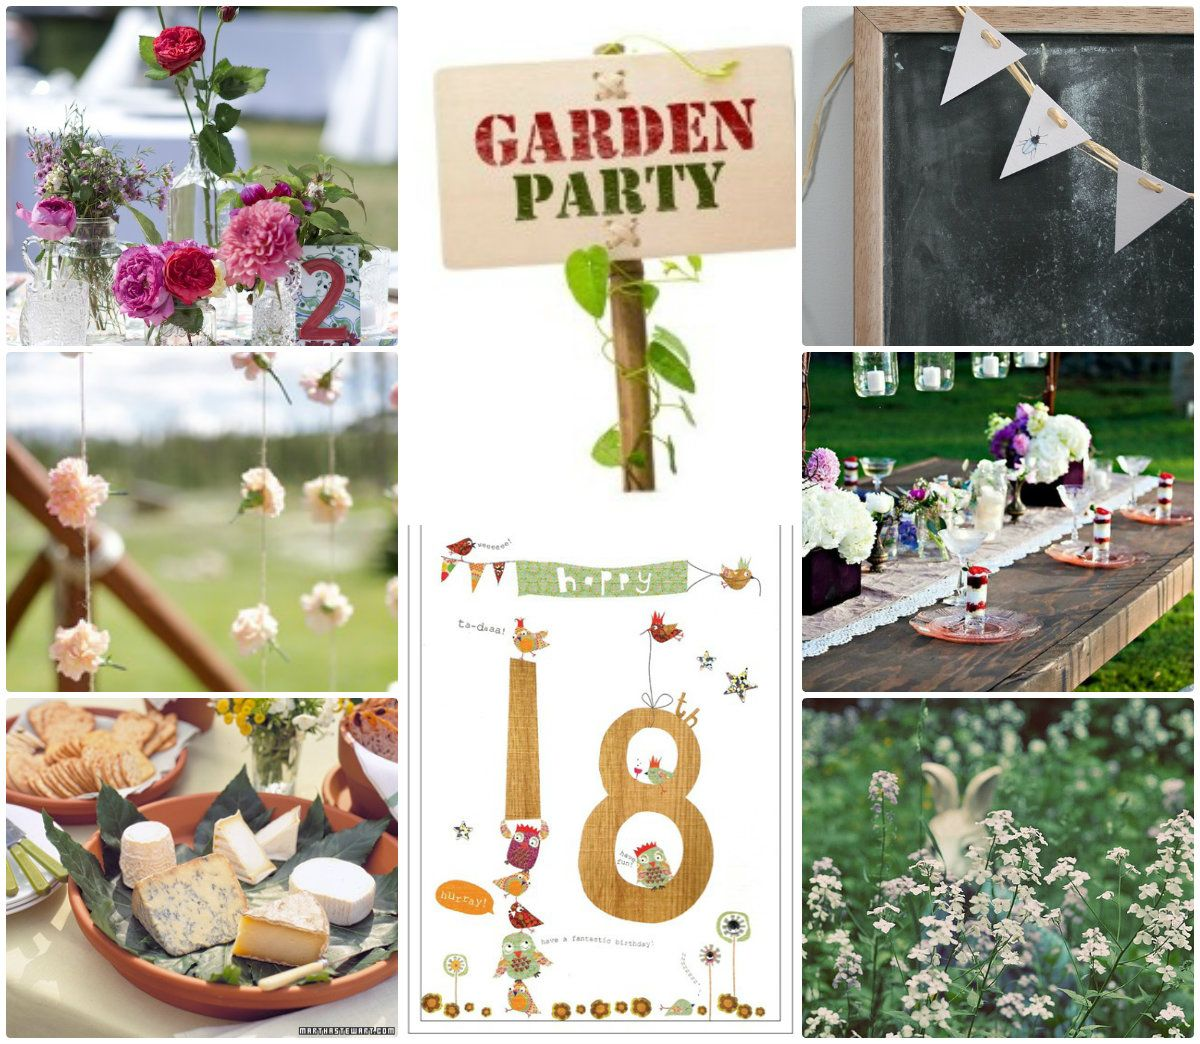 Fantastic 18th birthday party ideas village garden theme for 18 birthday decoration ideas